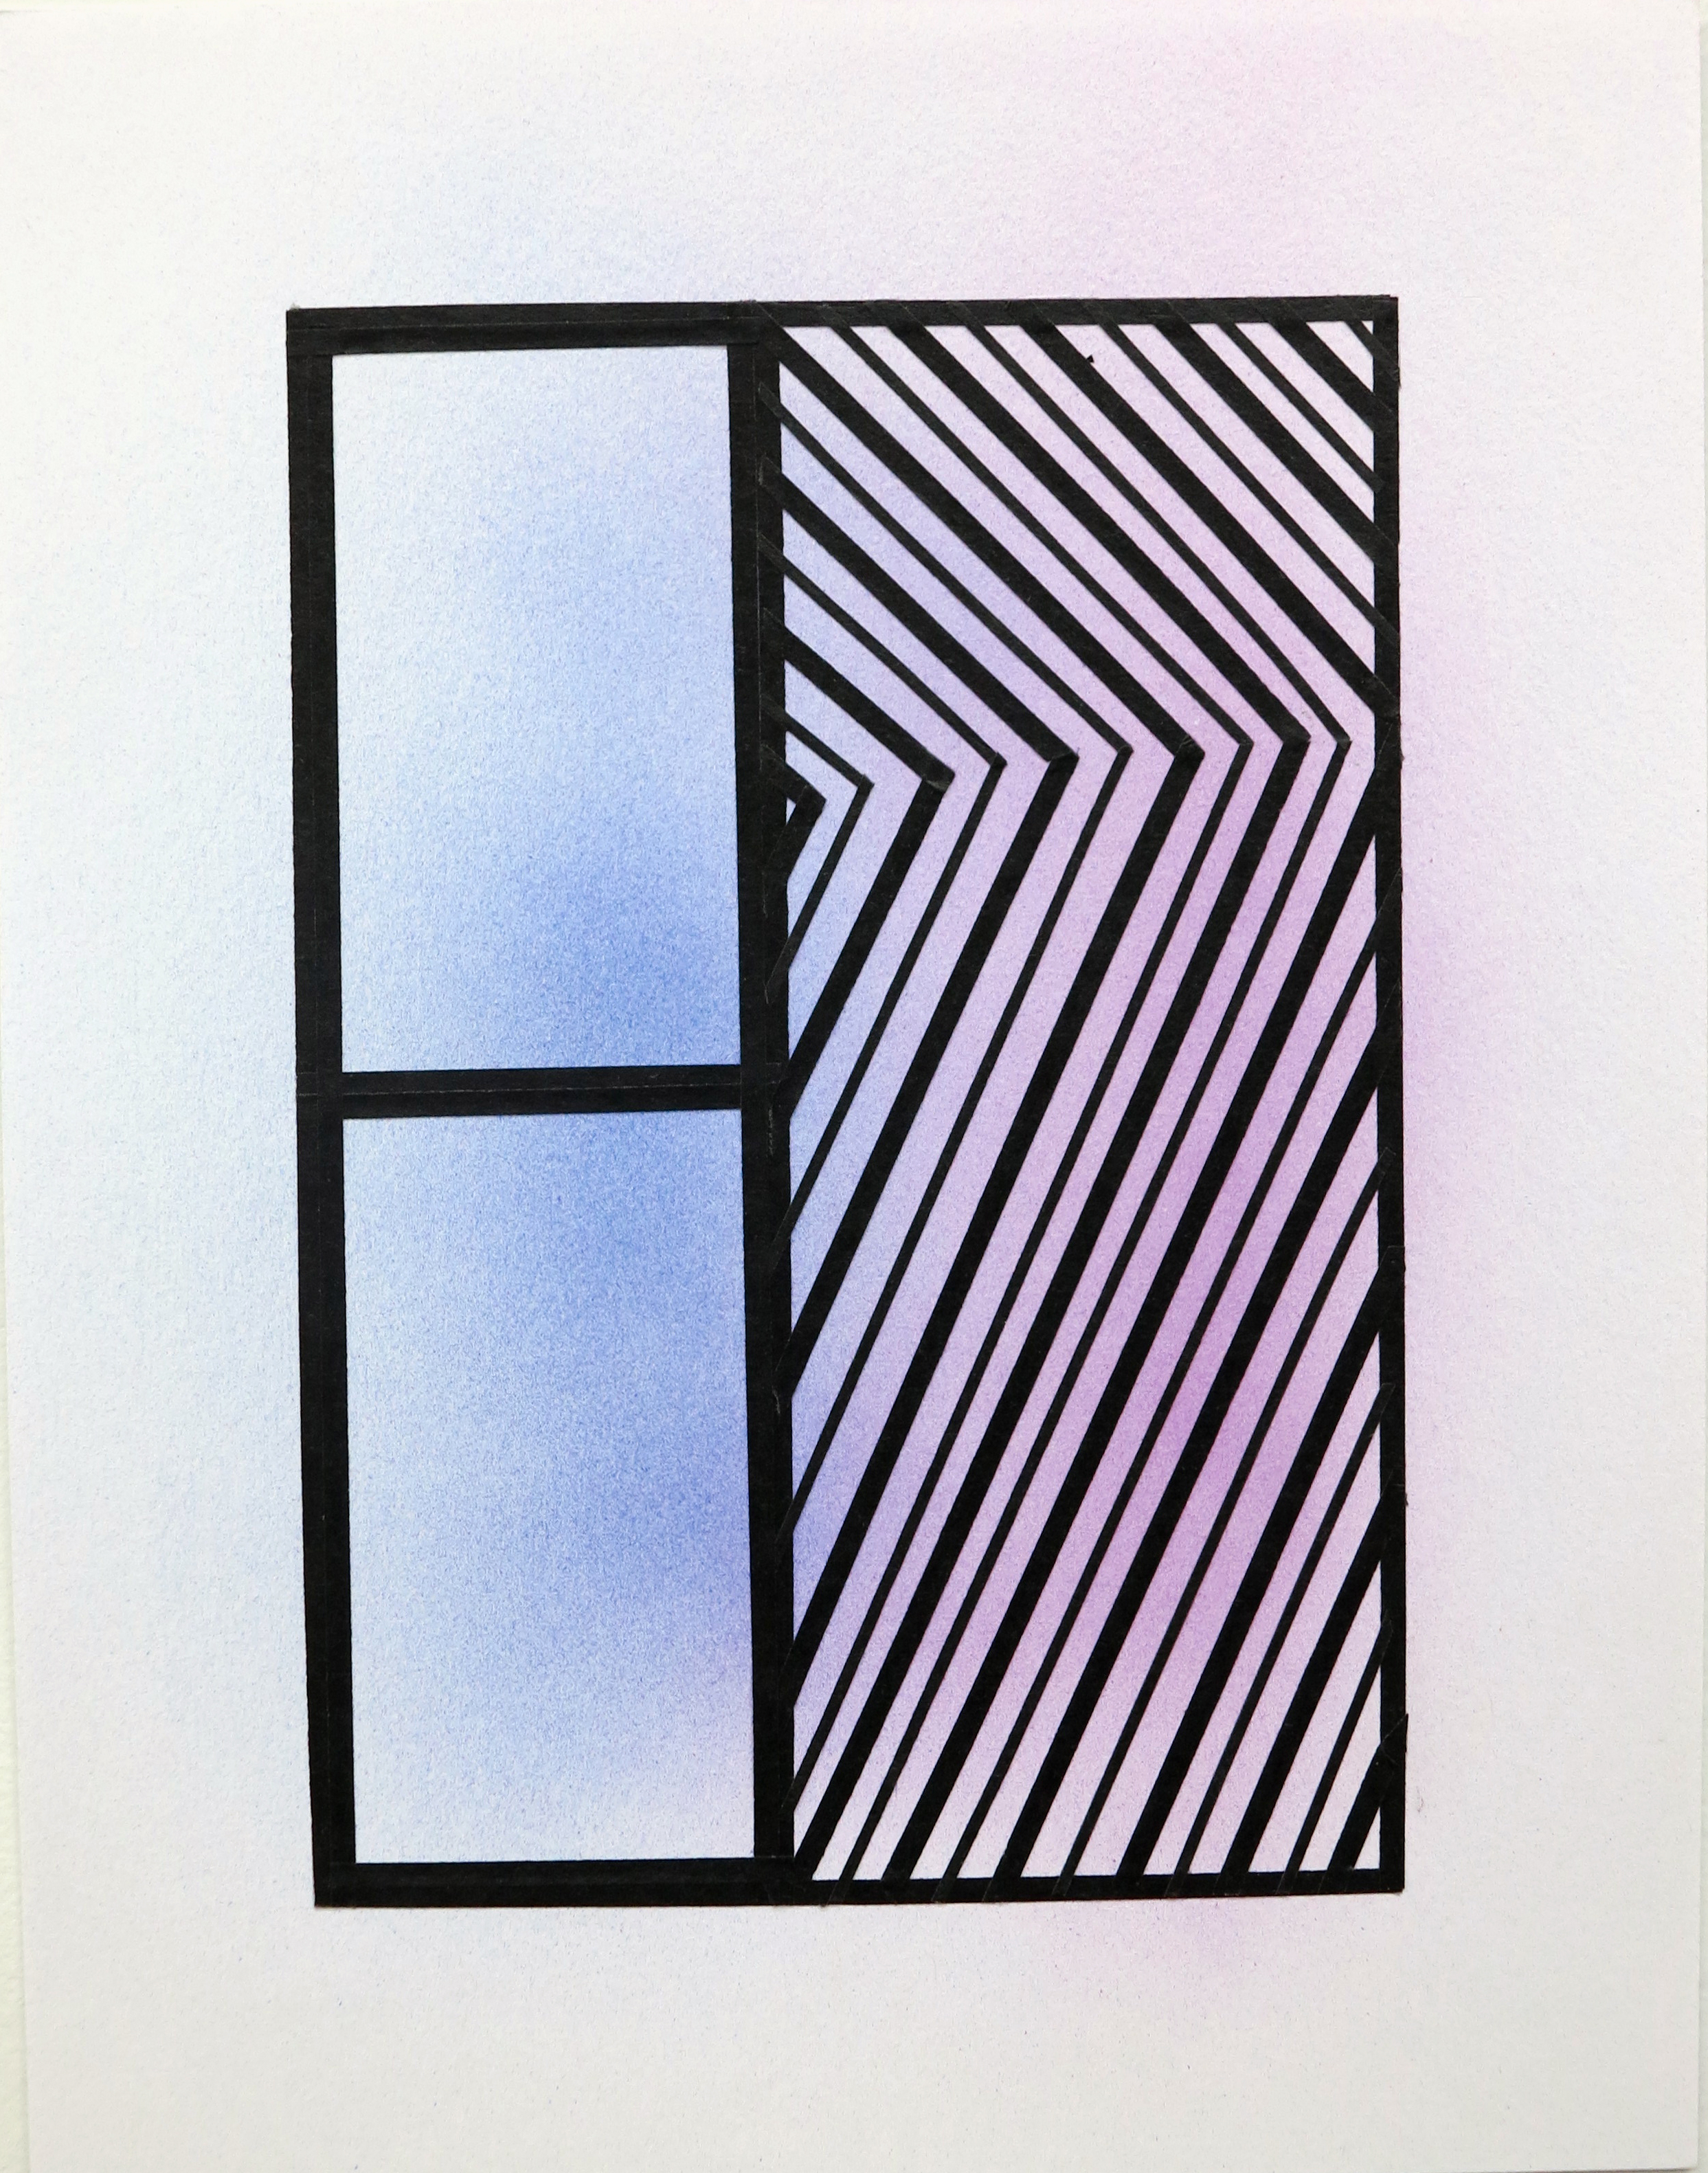 Untitled (Window 7)      2013       Acrylic and Tape on Paper      Framed dimensions 13 ¼ x 10 ¾ in.